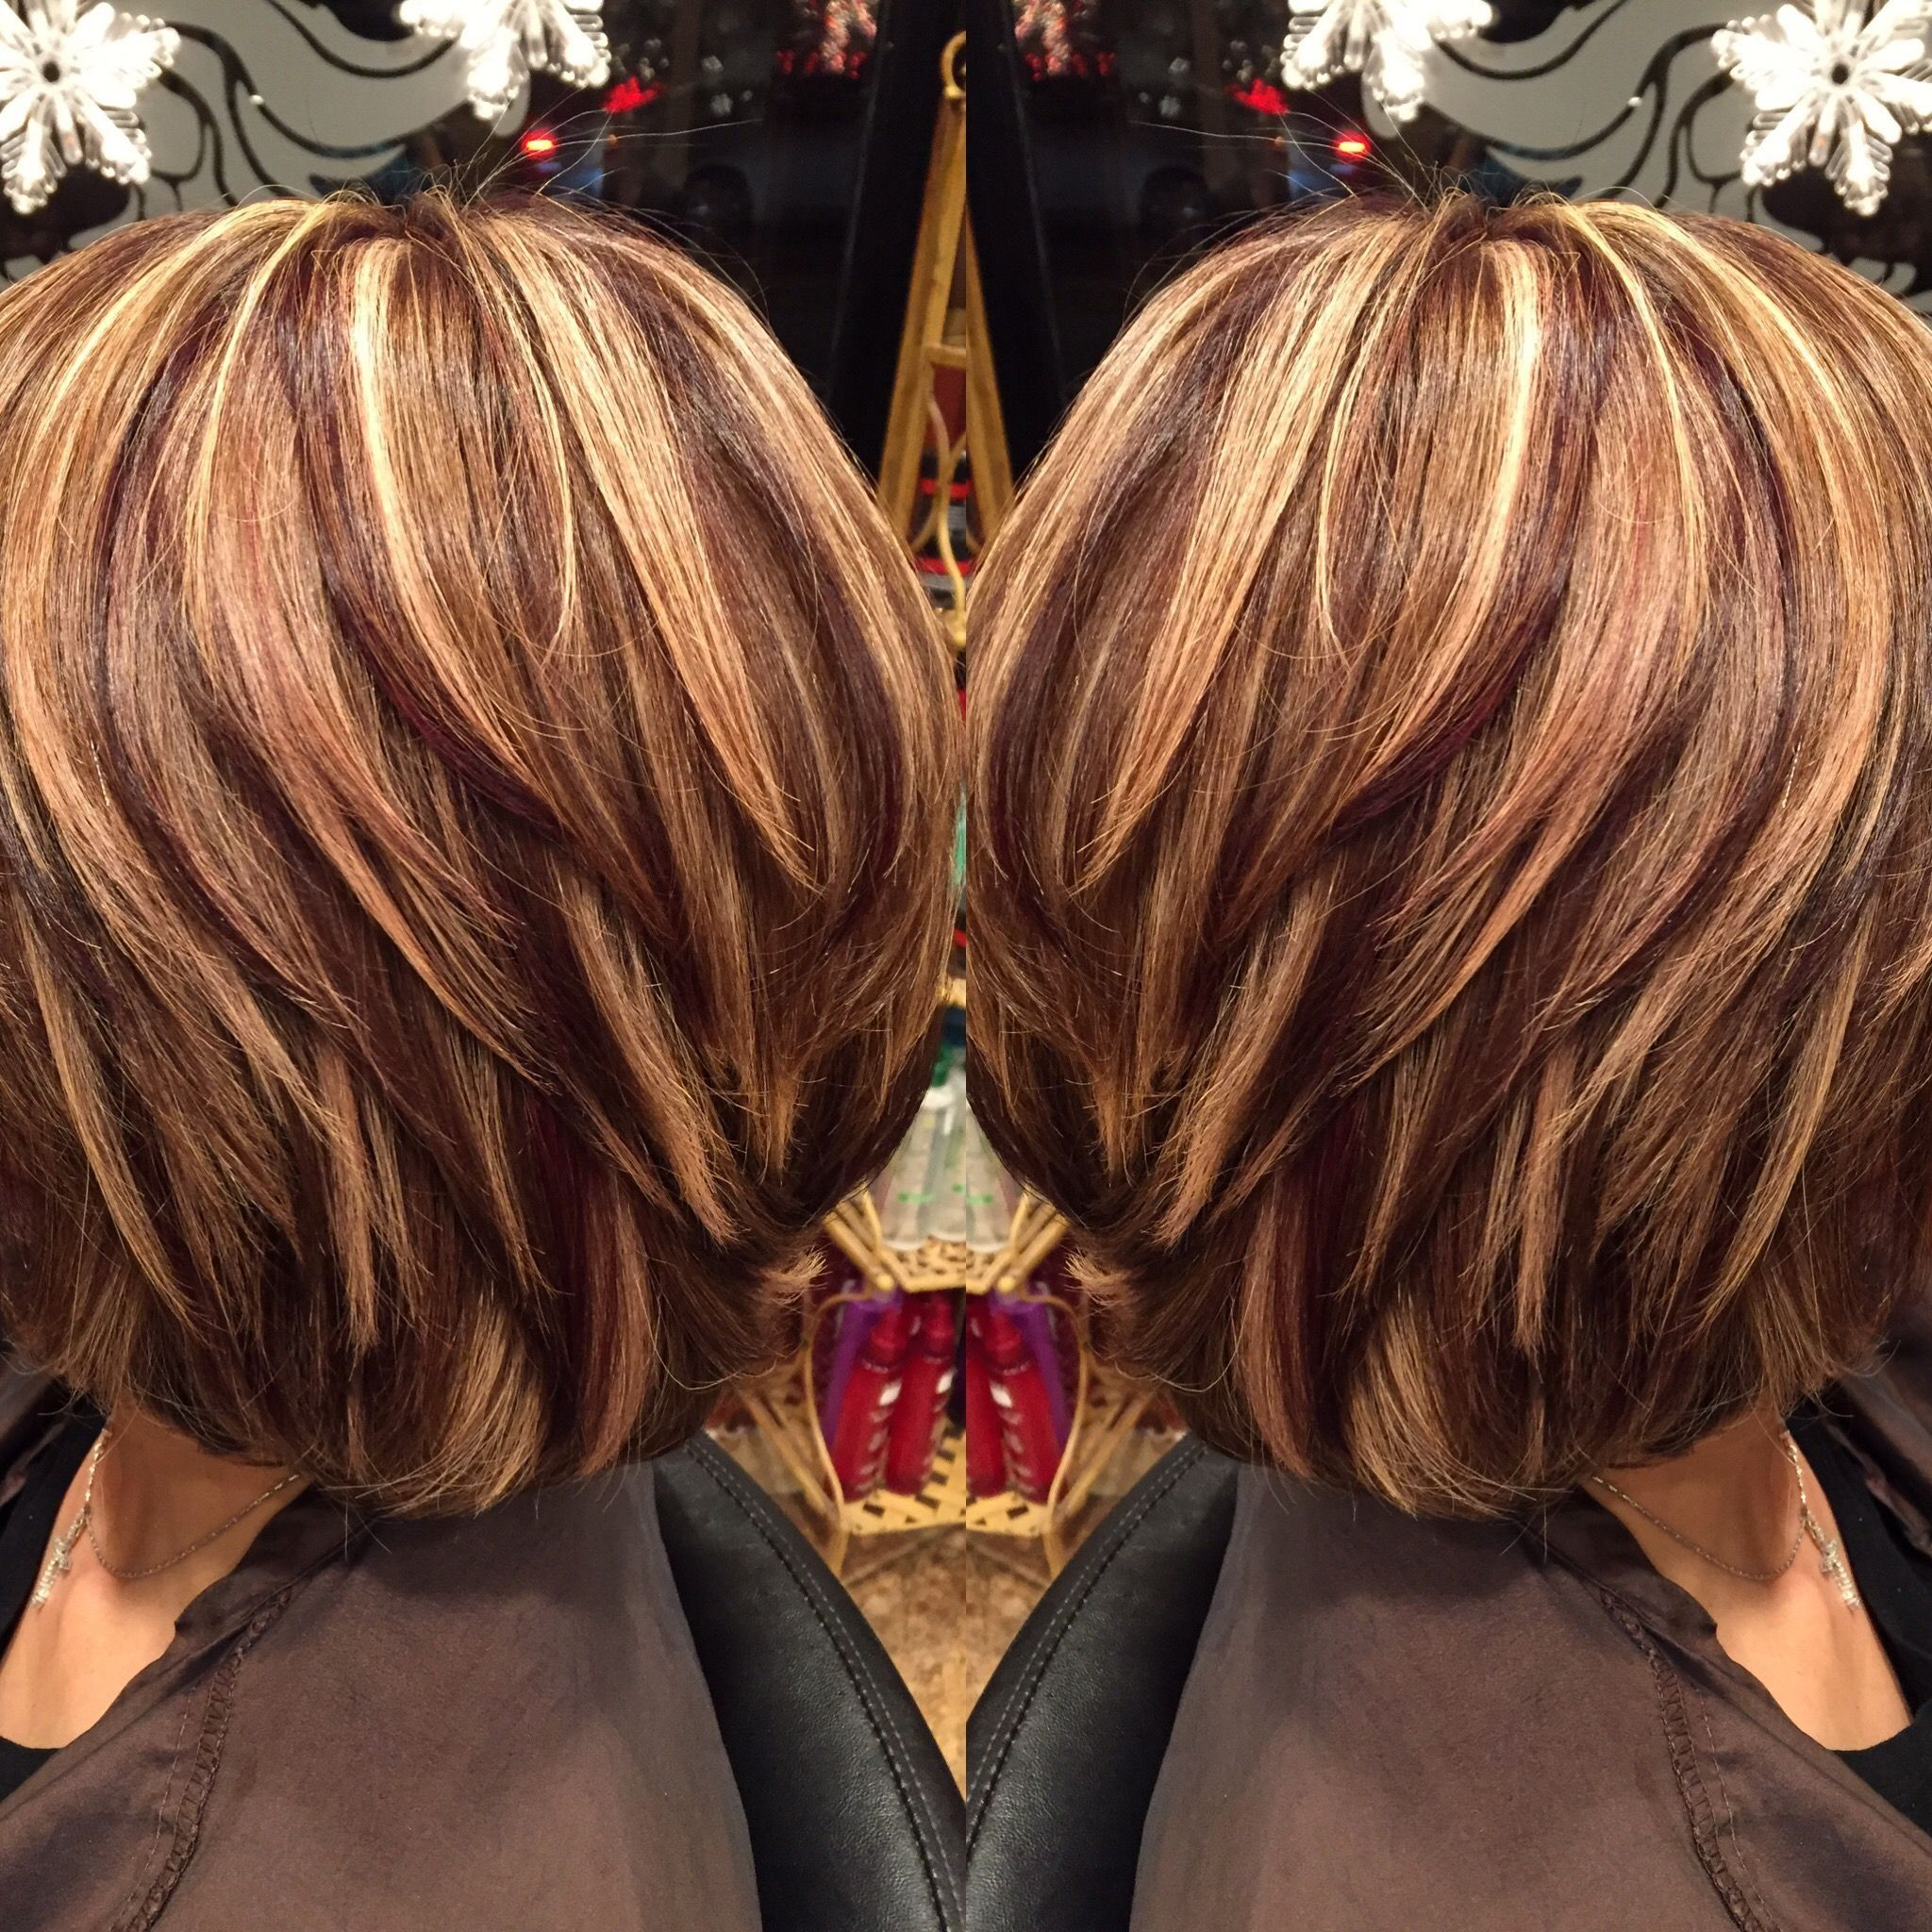 Image Result For Highlights And Lowlights For Short Brown Hair Hair Styles Hair Color Highlights Fall Hair Highlights